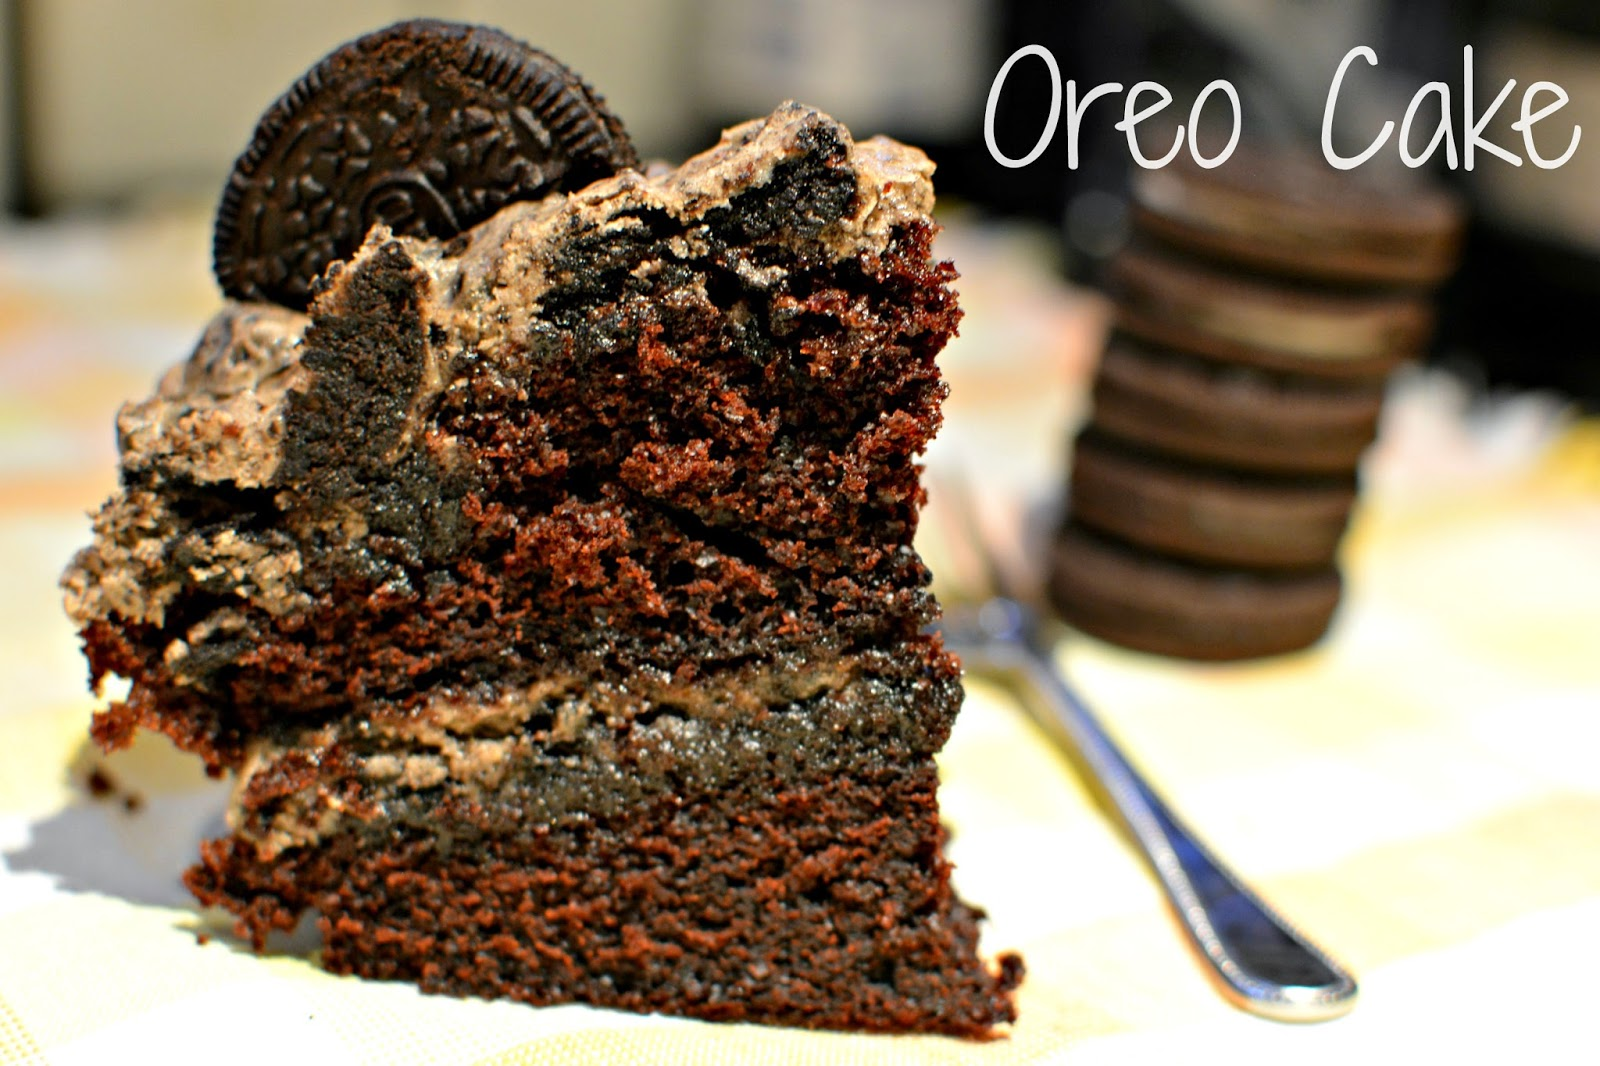 Double stuffed oreo cake recipe